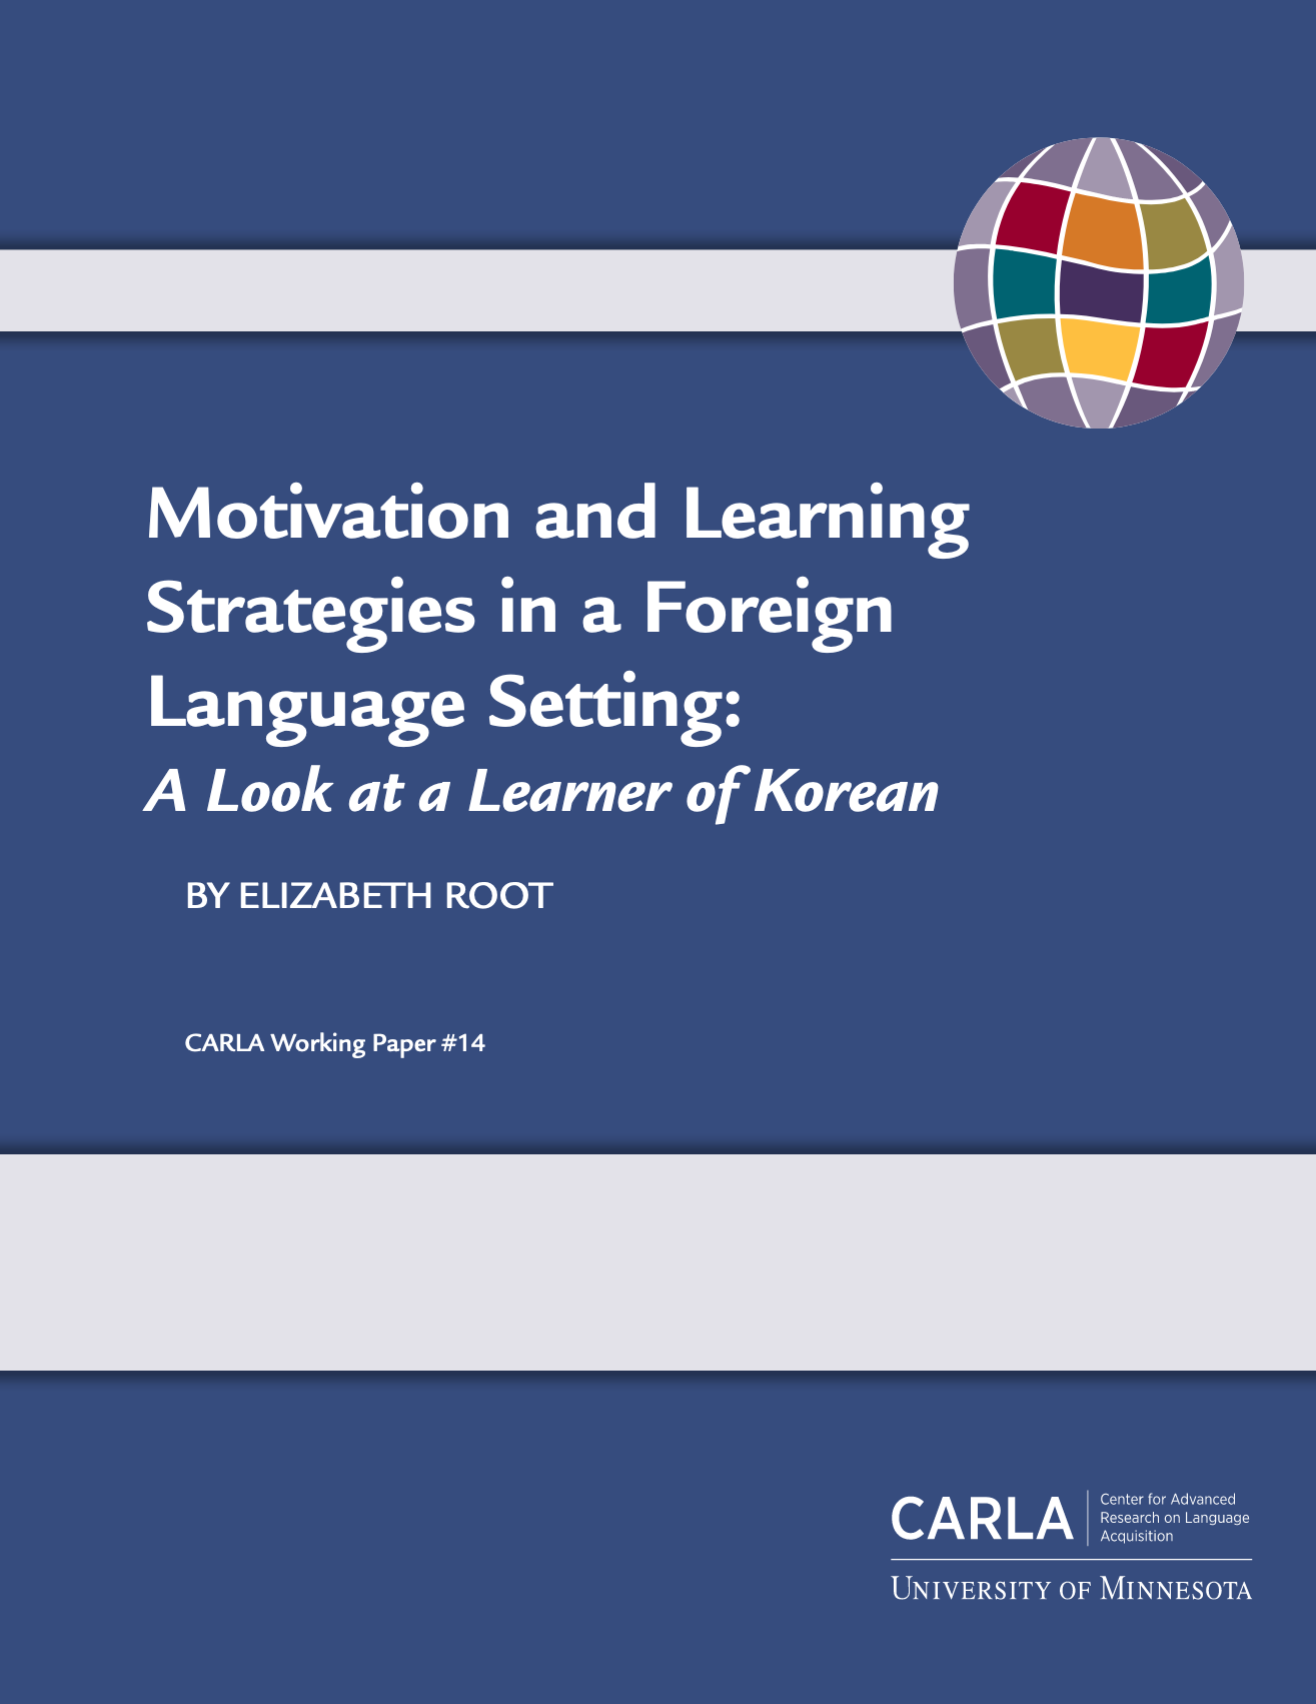 Motivation and Learning Strategies: Korean